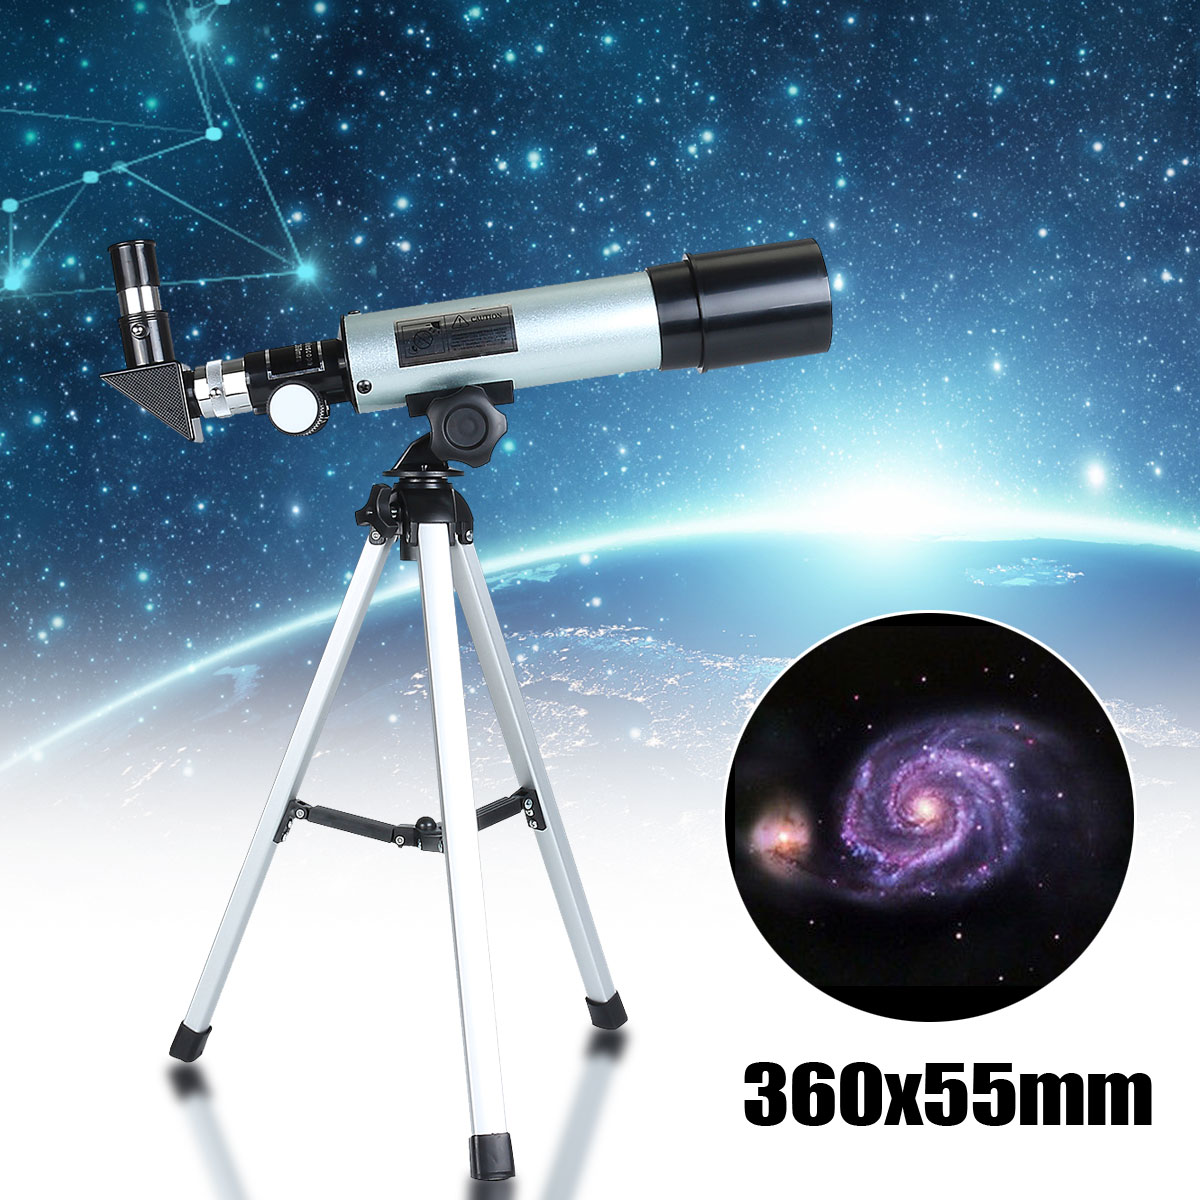 Astronomical Telescope Tripod-Space Portable Camping F36050M Monocular With For Beginner